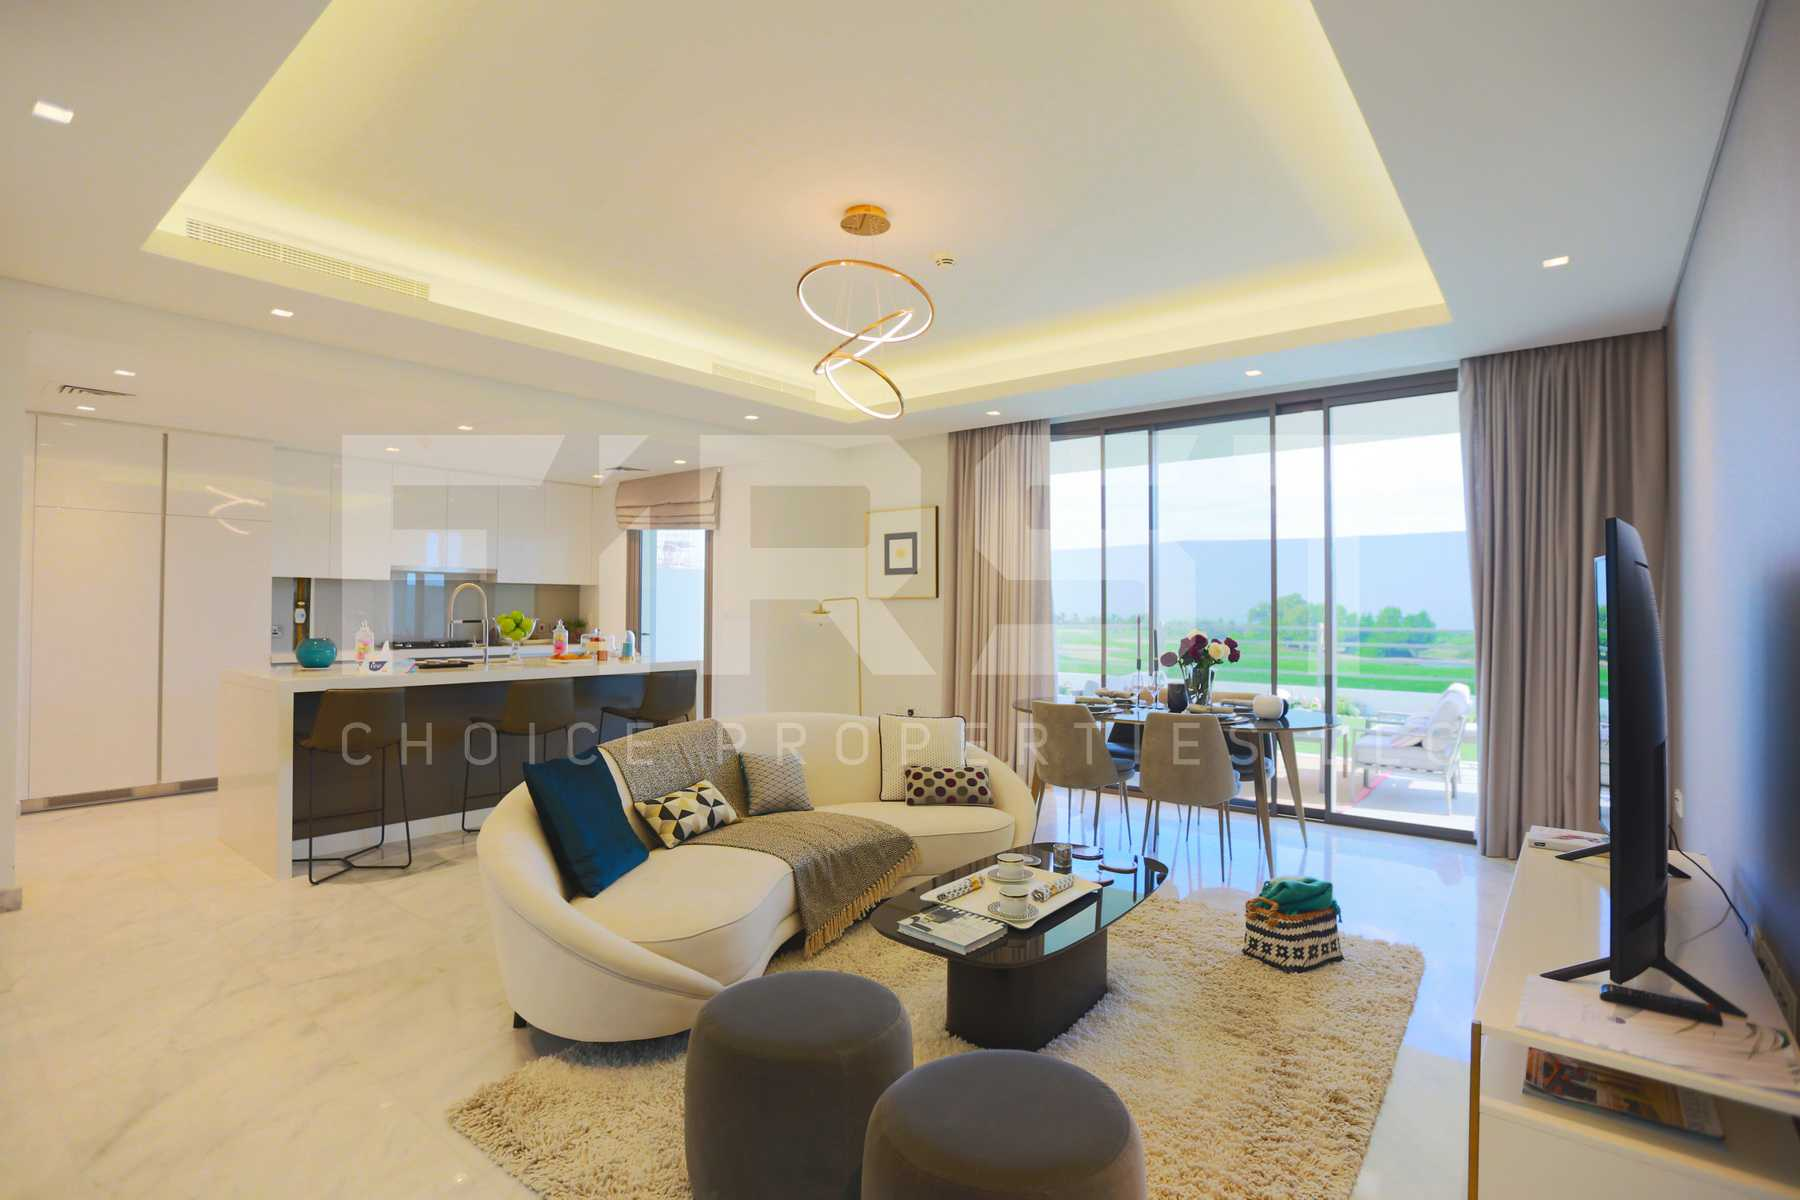 E. Internal Photo of 4 Bedroom Villa Type 4F in Yas Acres Yas Island Abu Dhabi UAE (17).jpg